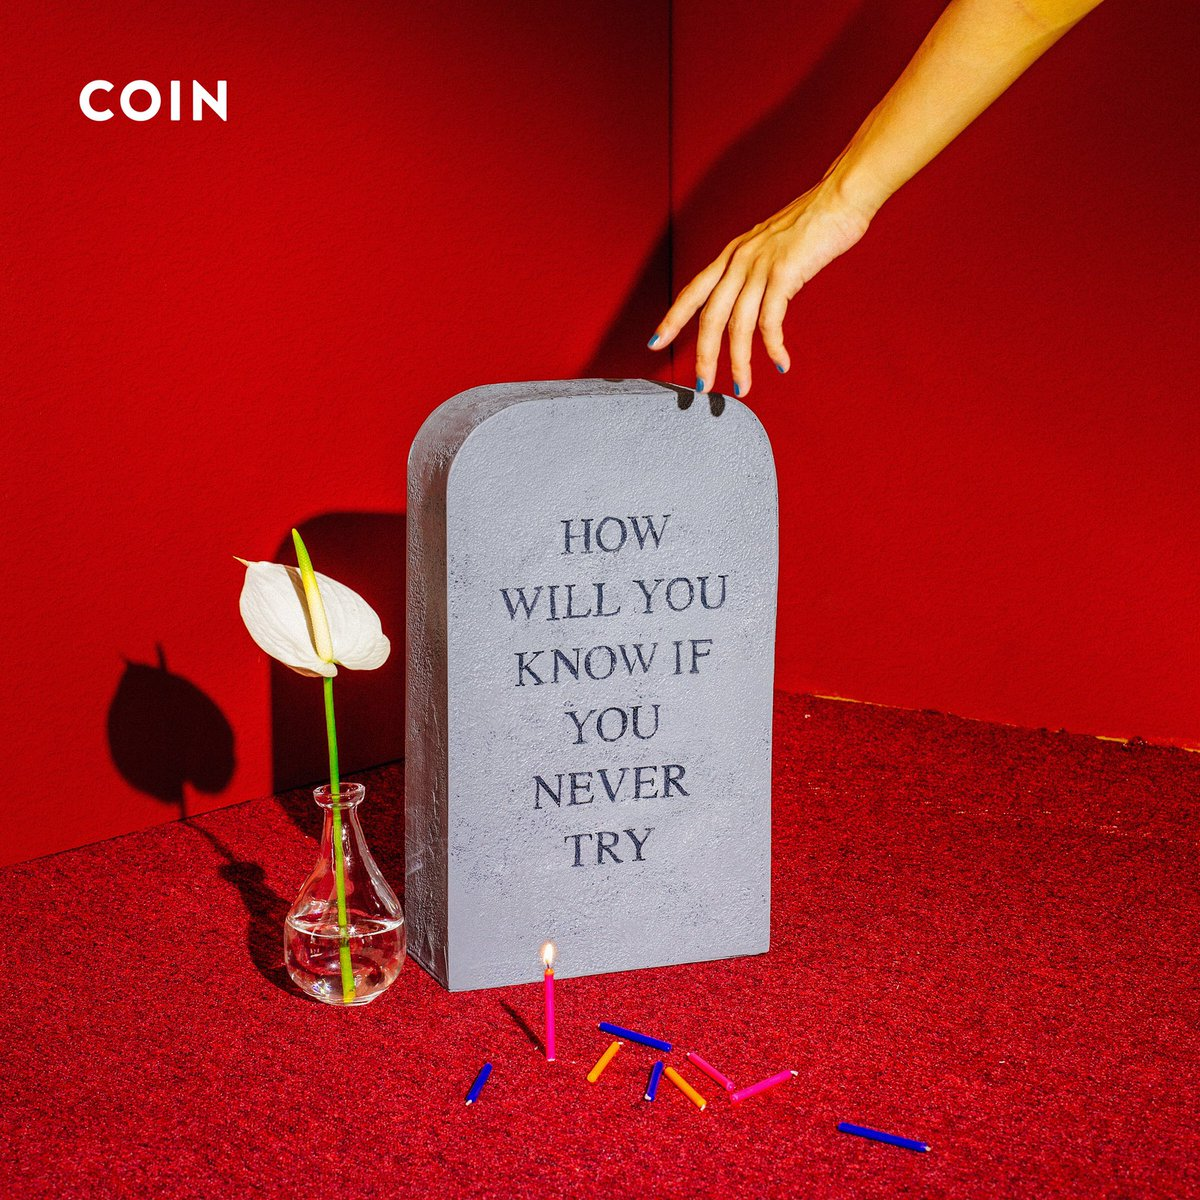 COIN – How Will You Know If You Never Try